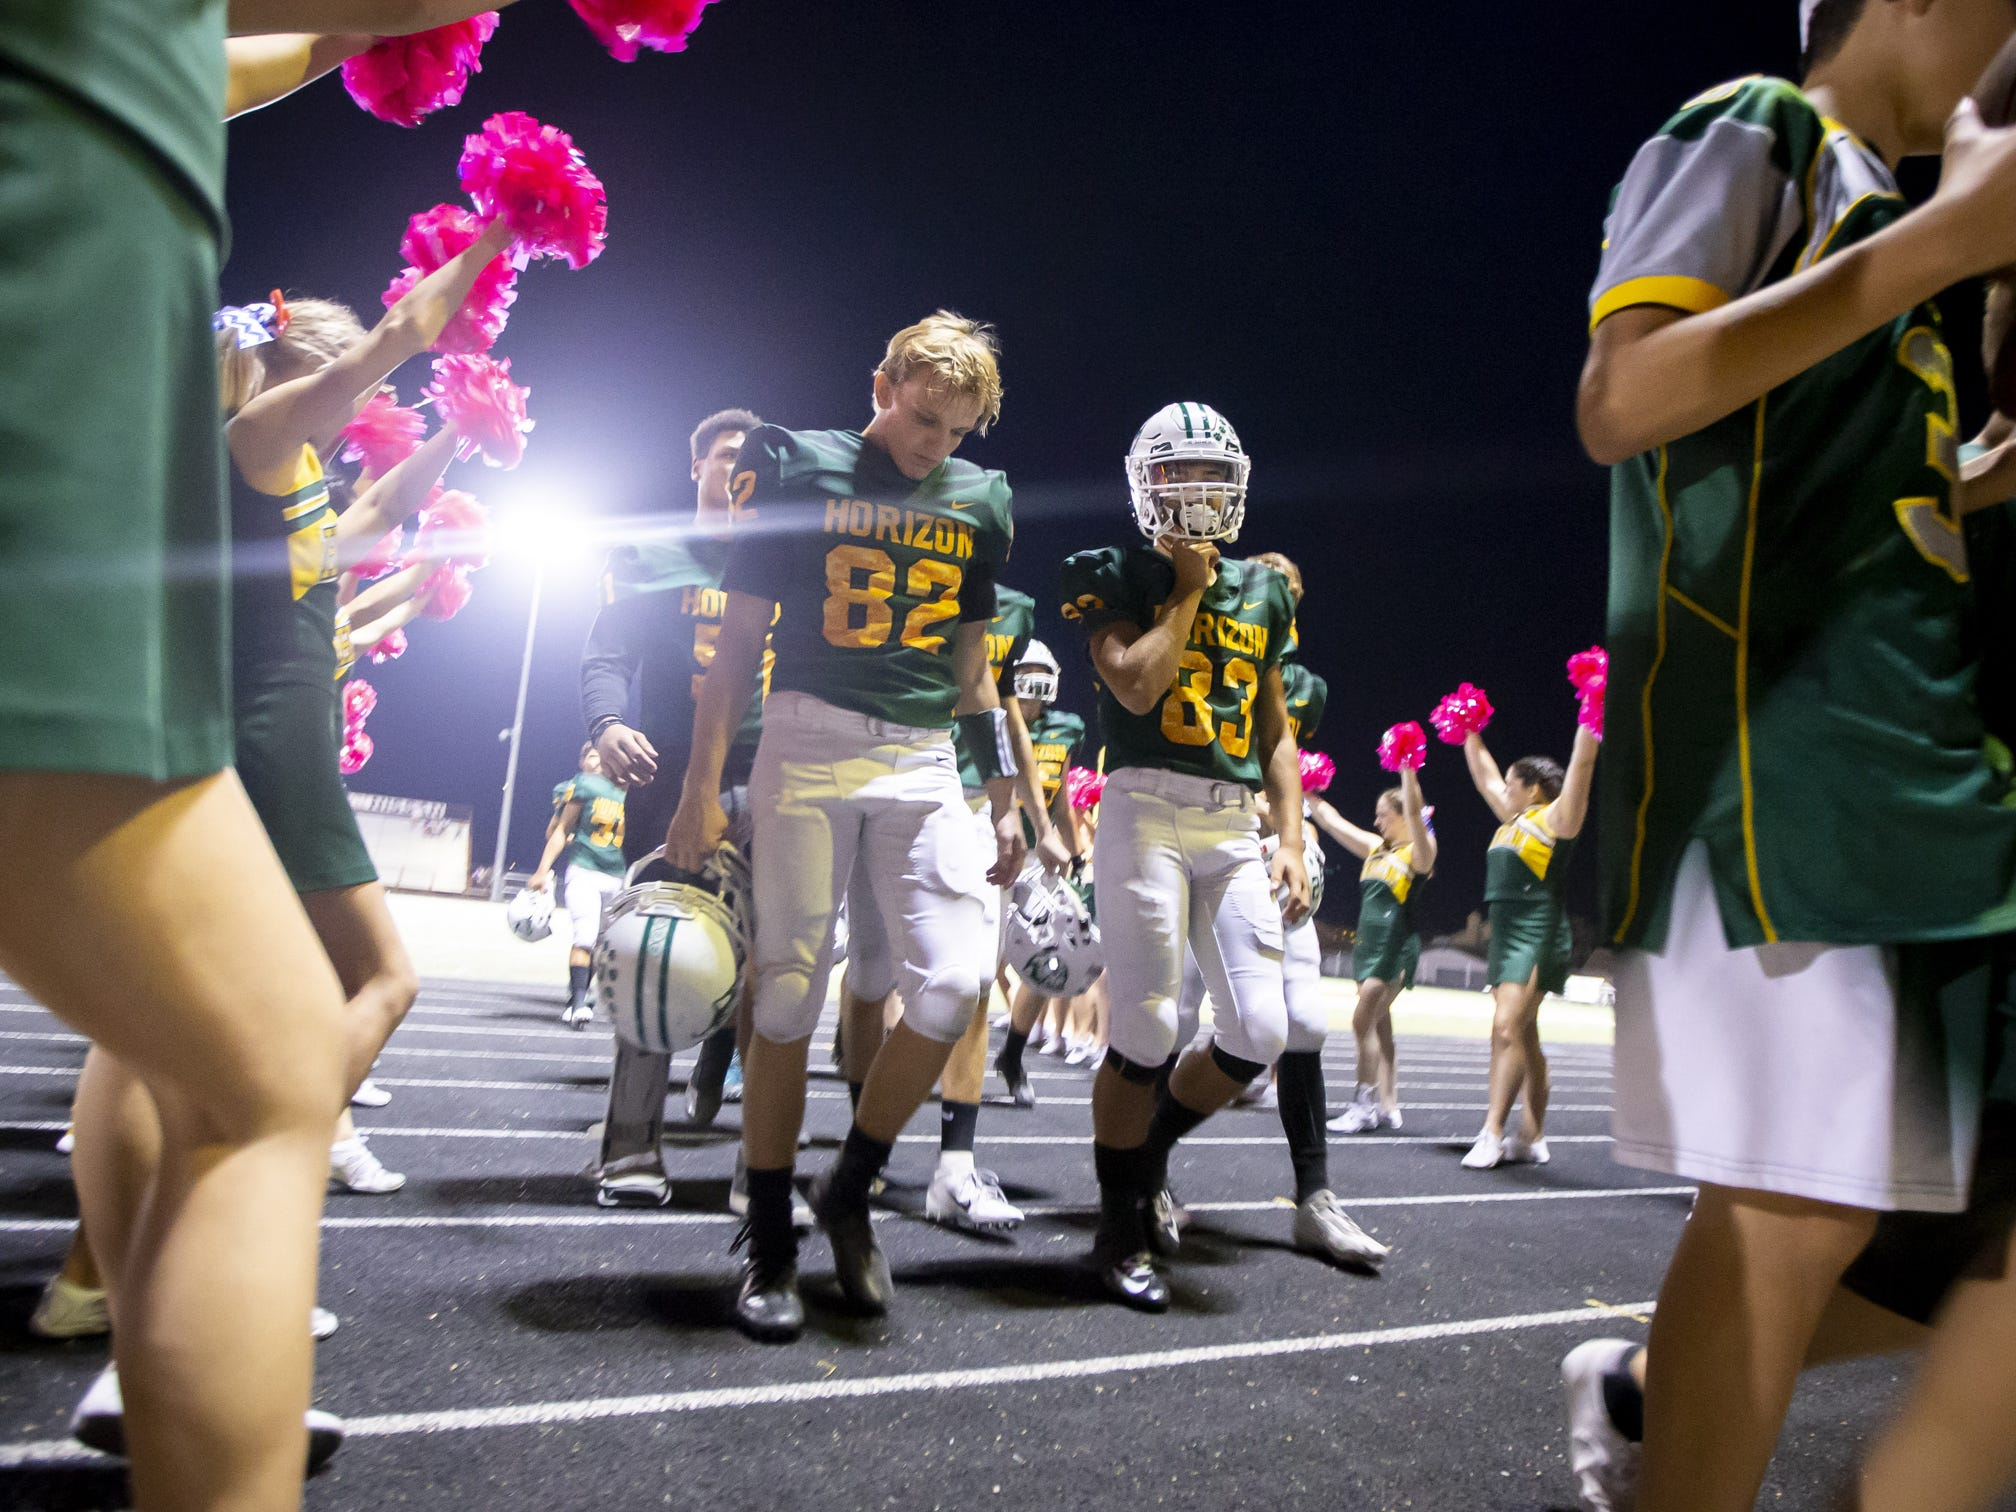 The Horizon Huskies walk off the field following their loss against the Notre Dame Prep Saints at Horizon High School on Friday, October 5, 2018 in Scottsdale, Arizona. #azhsfb